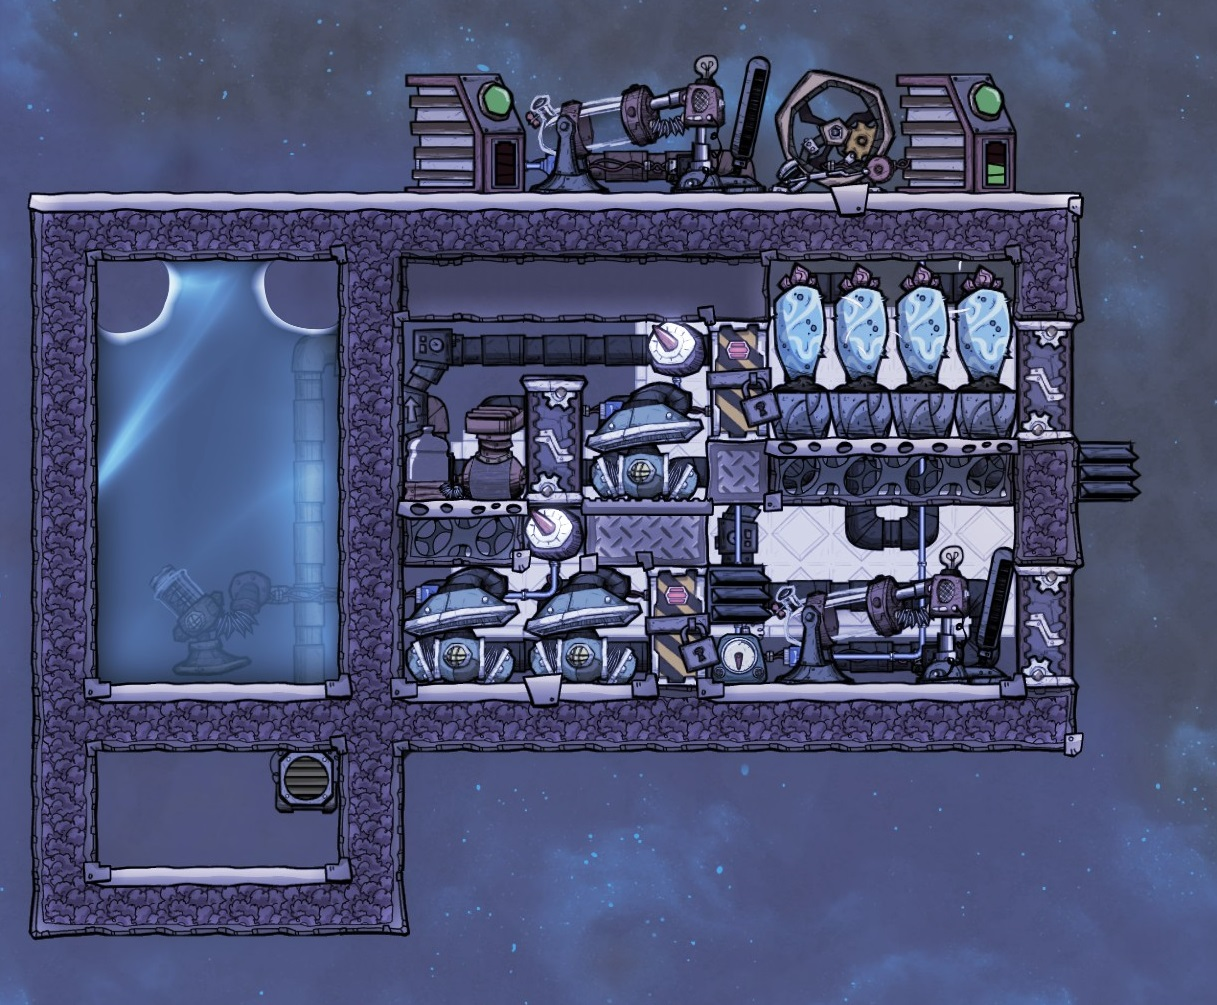 Oxygen Not Included - Accidental Breaches Into Chlorine